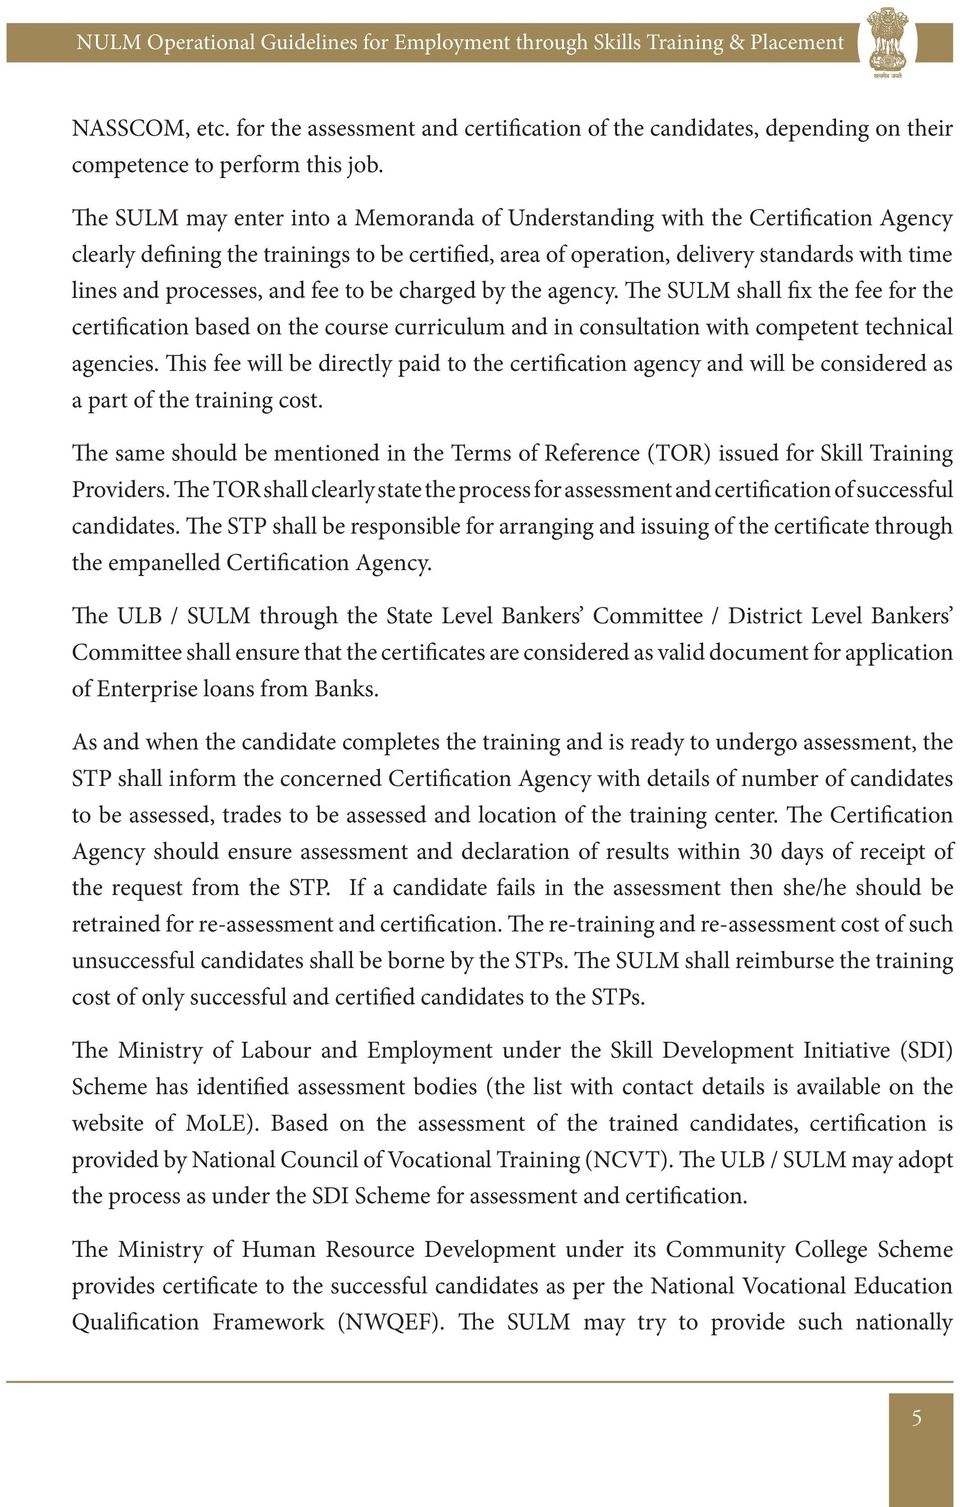 employment through skills training placement pdf and fee to be charged by the agency the sulm shall fix the fee for